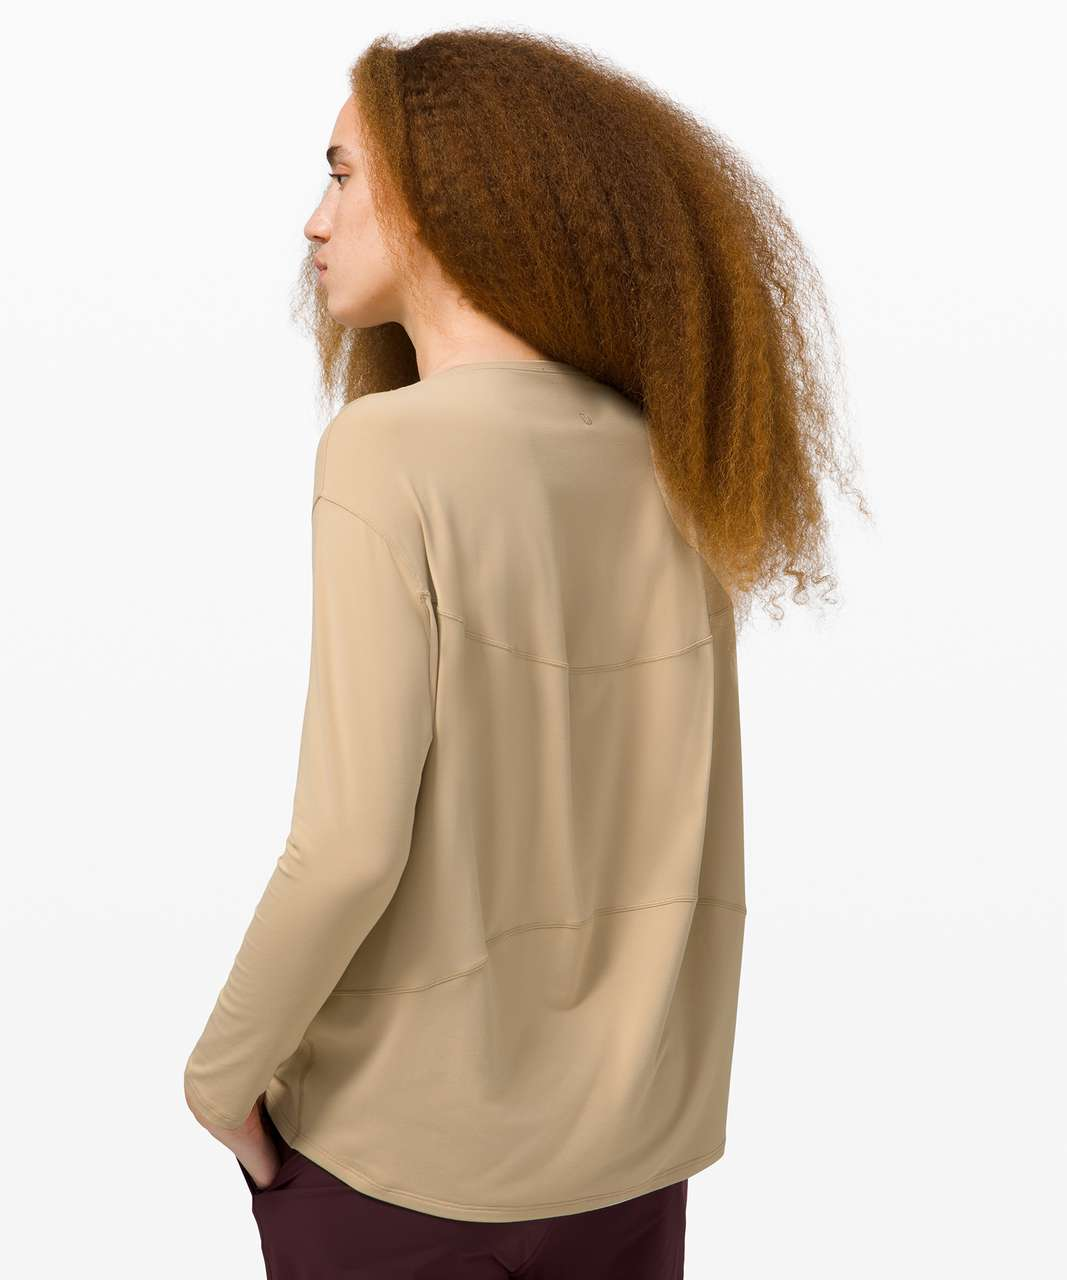 Lululemon Back in Action Long Sleeve *Rulu - Trench